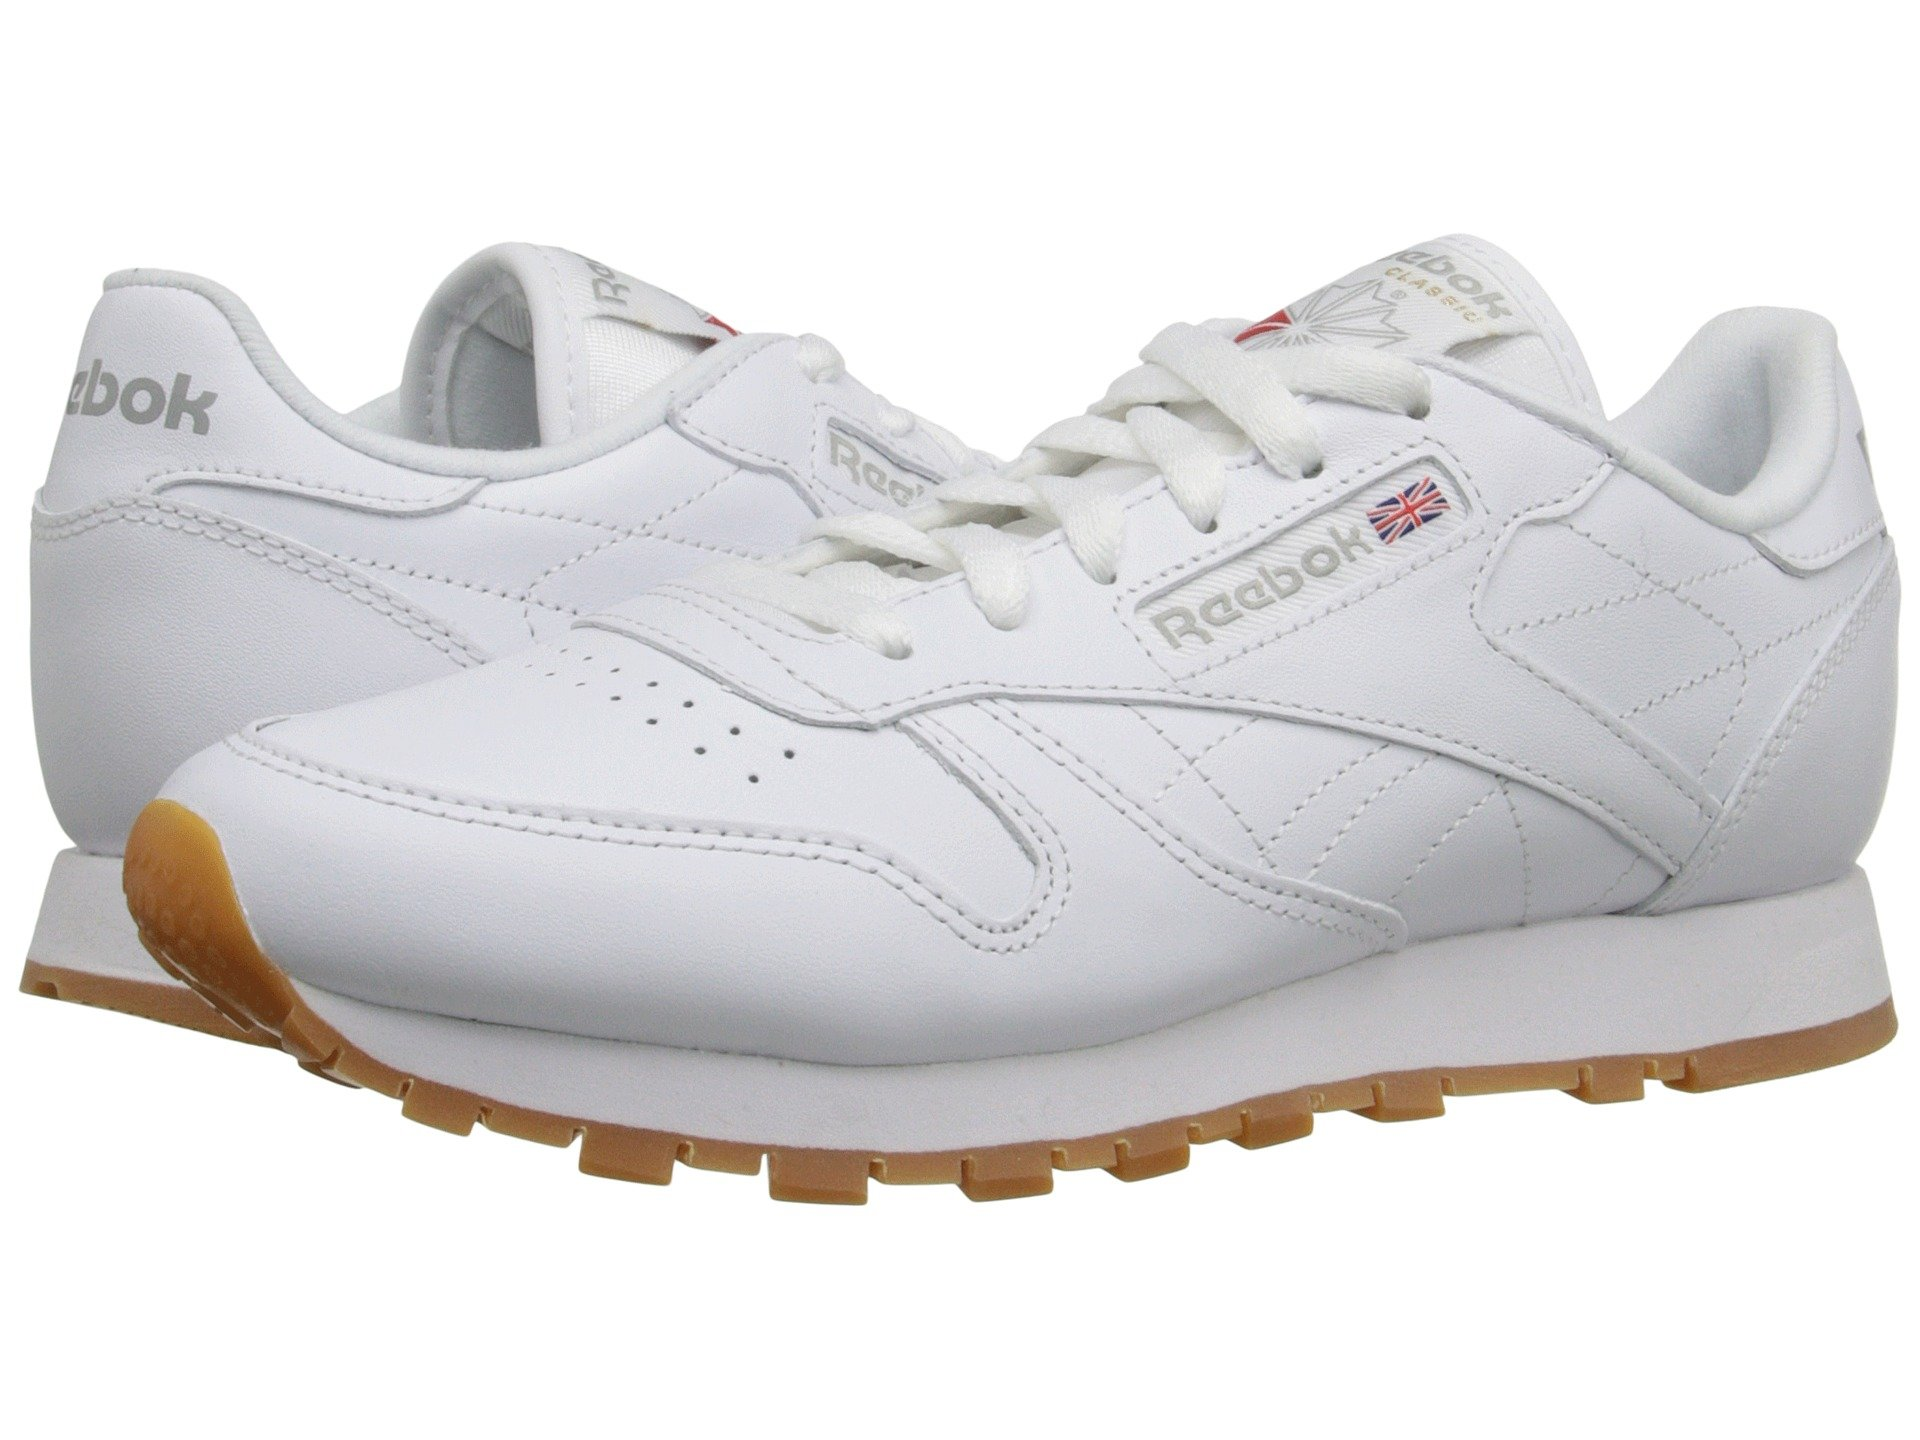 1c5c6f98458 White Gum. 760. Reebok Lifestyle. Classic Leather